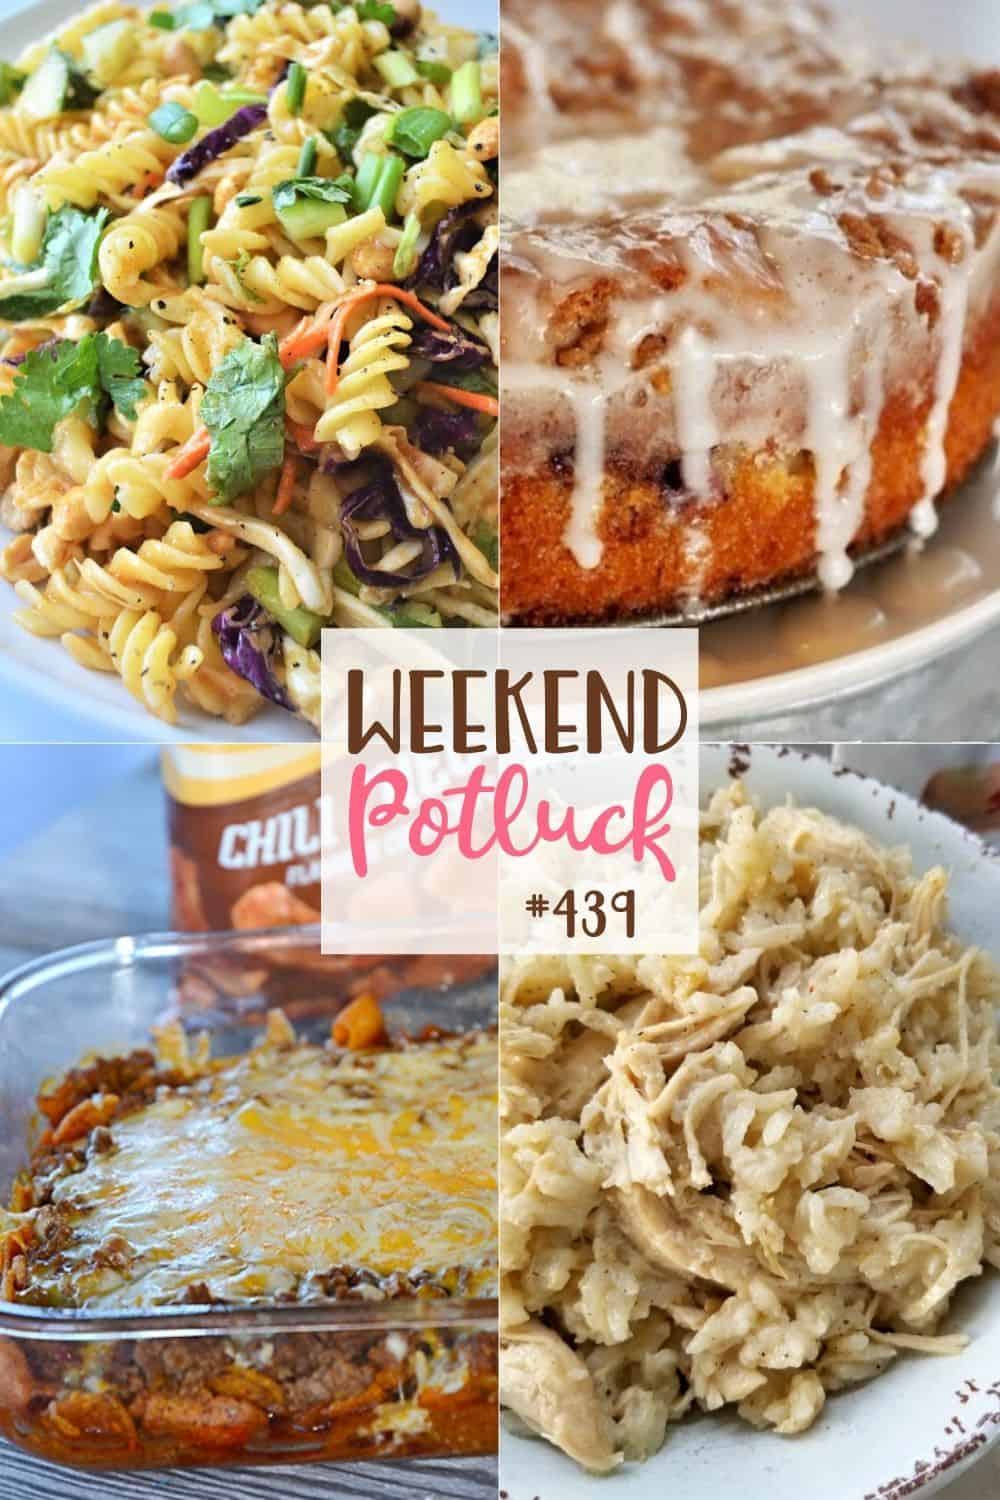 Weekend Potluck featured recipes: Walking Taco Casserole, Blueberry Crumble Cake, Thai Noodle Salad, Southern Style Crock Pot Chicken and Rice